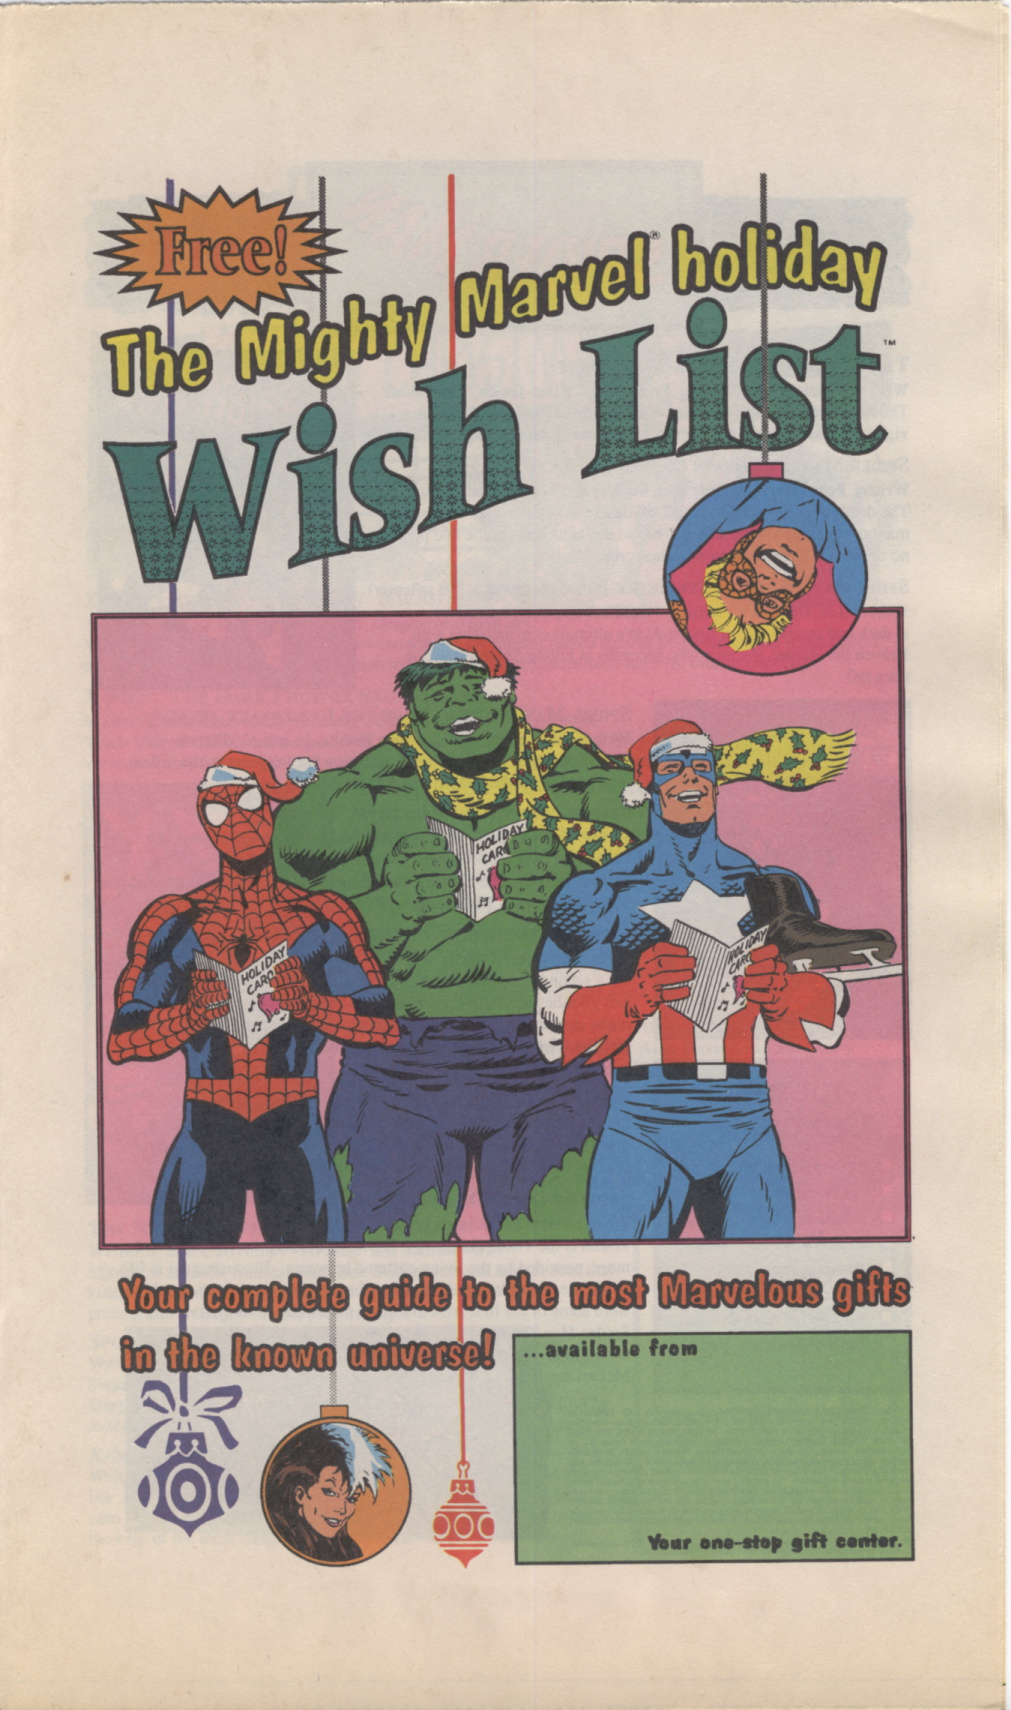 Time Capsule: Mighty Marvel holiday Wish List 1990